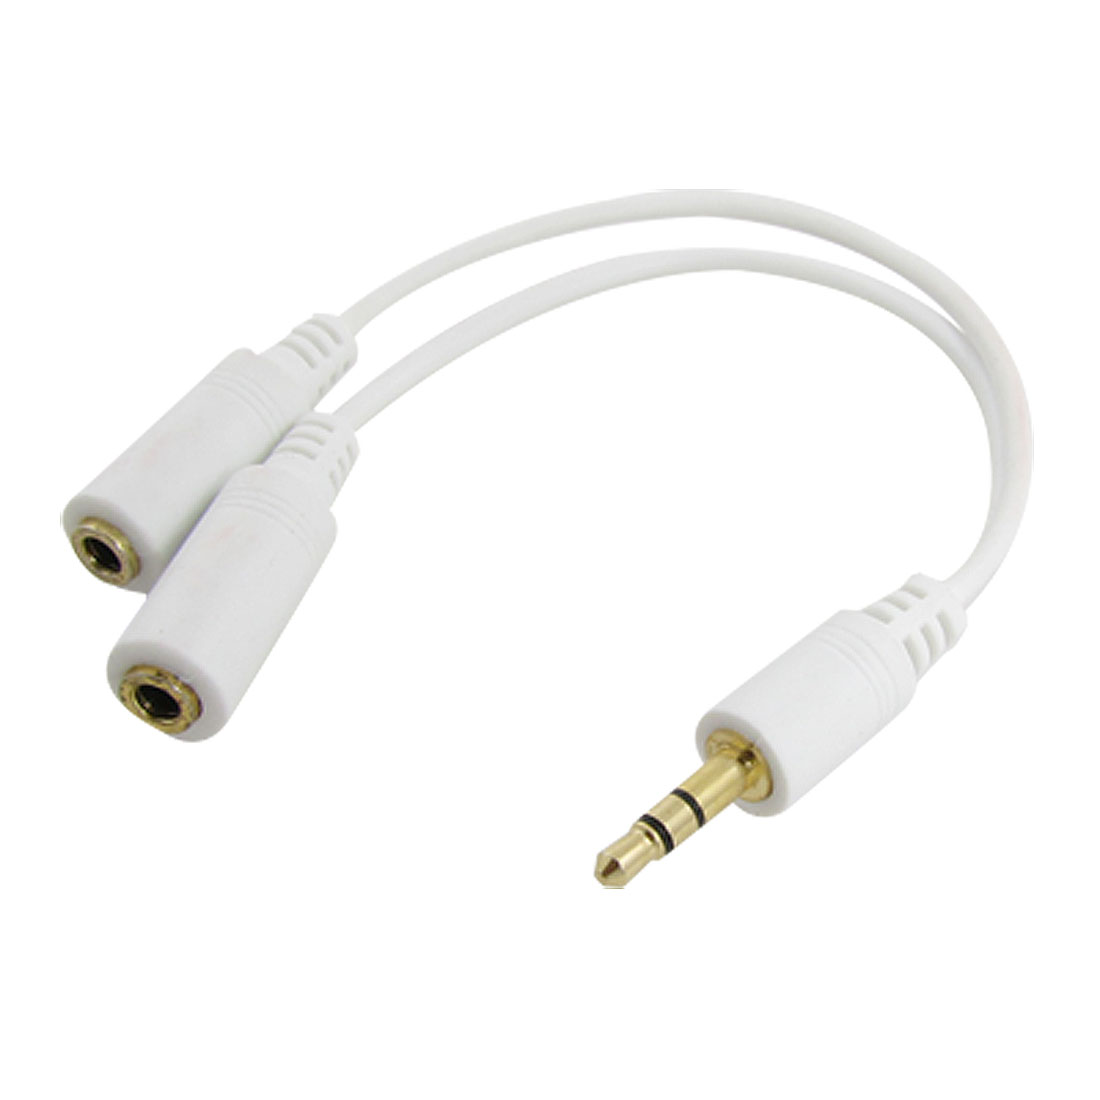 3.5mm Male to 2 3.5mm Female Adapter Audio Line Cable